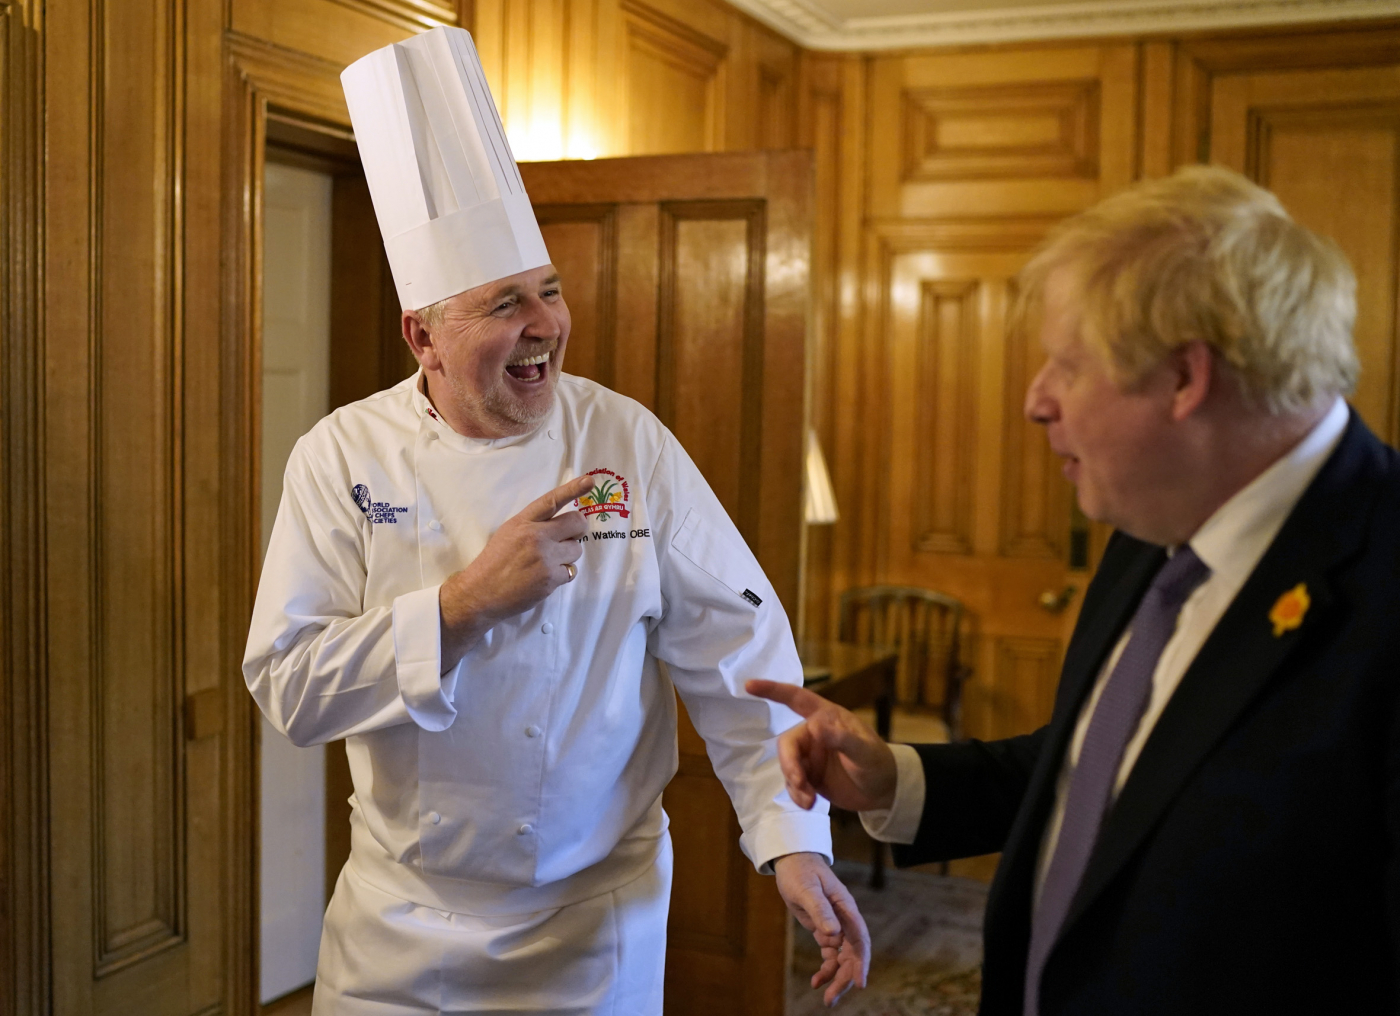 Chefs serve up a treat for Prime Minister Boris at Wales Week in London - 1